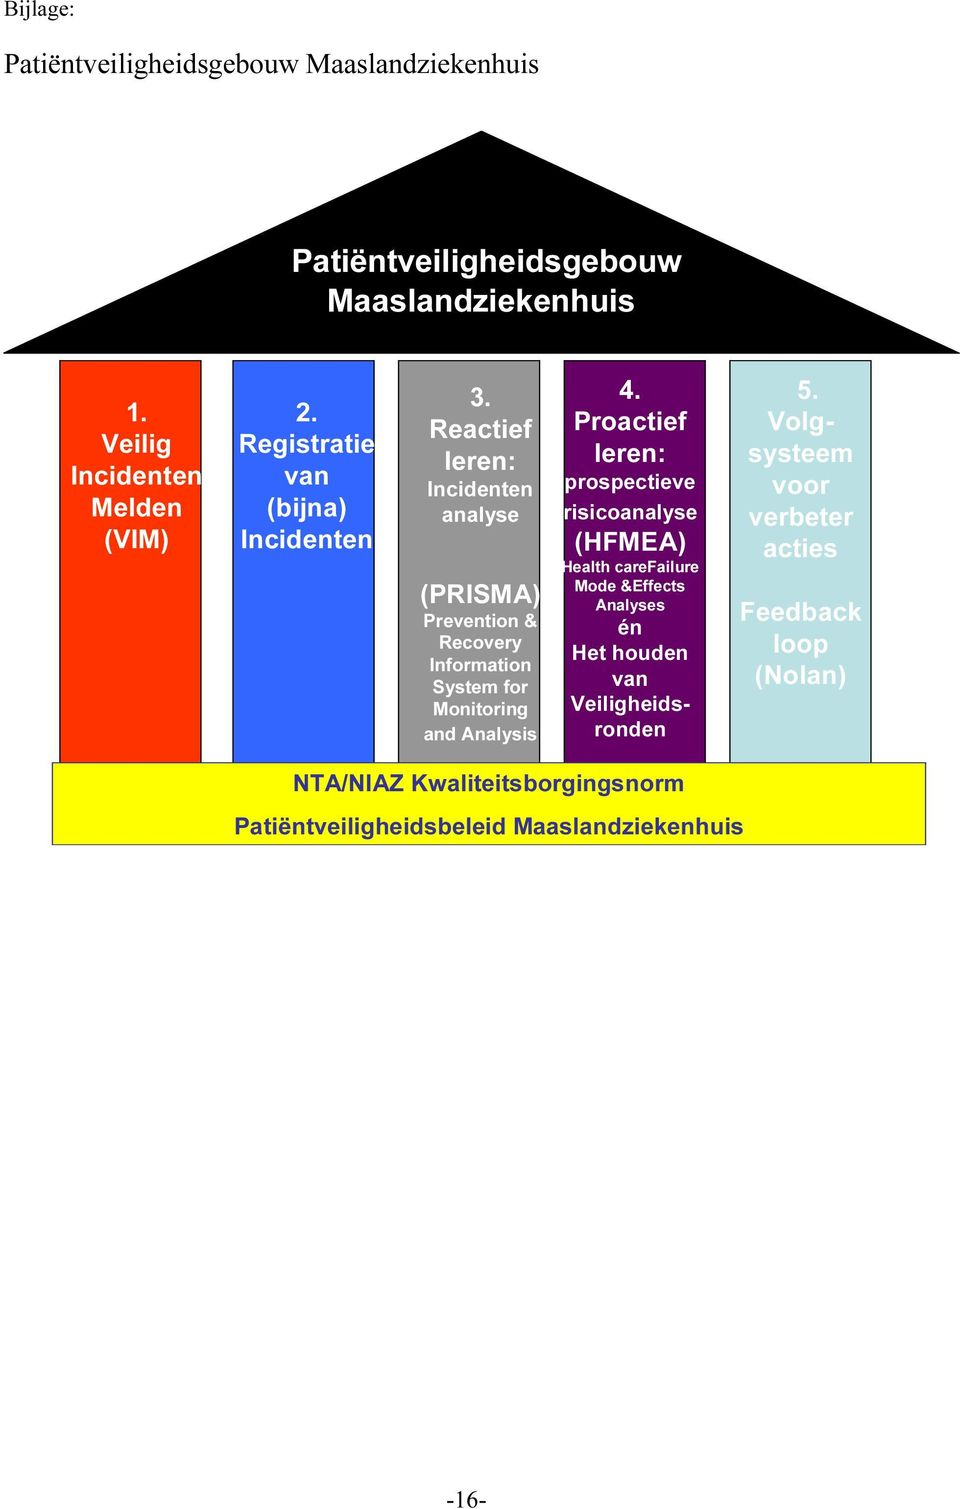 Reactief leren: Incidenten analyse (PRISMA) Prevention & Recovery Information System for Monitoring and Analysis 4.